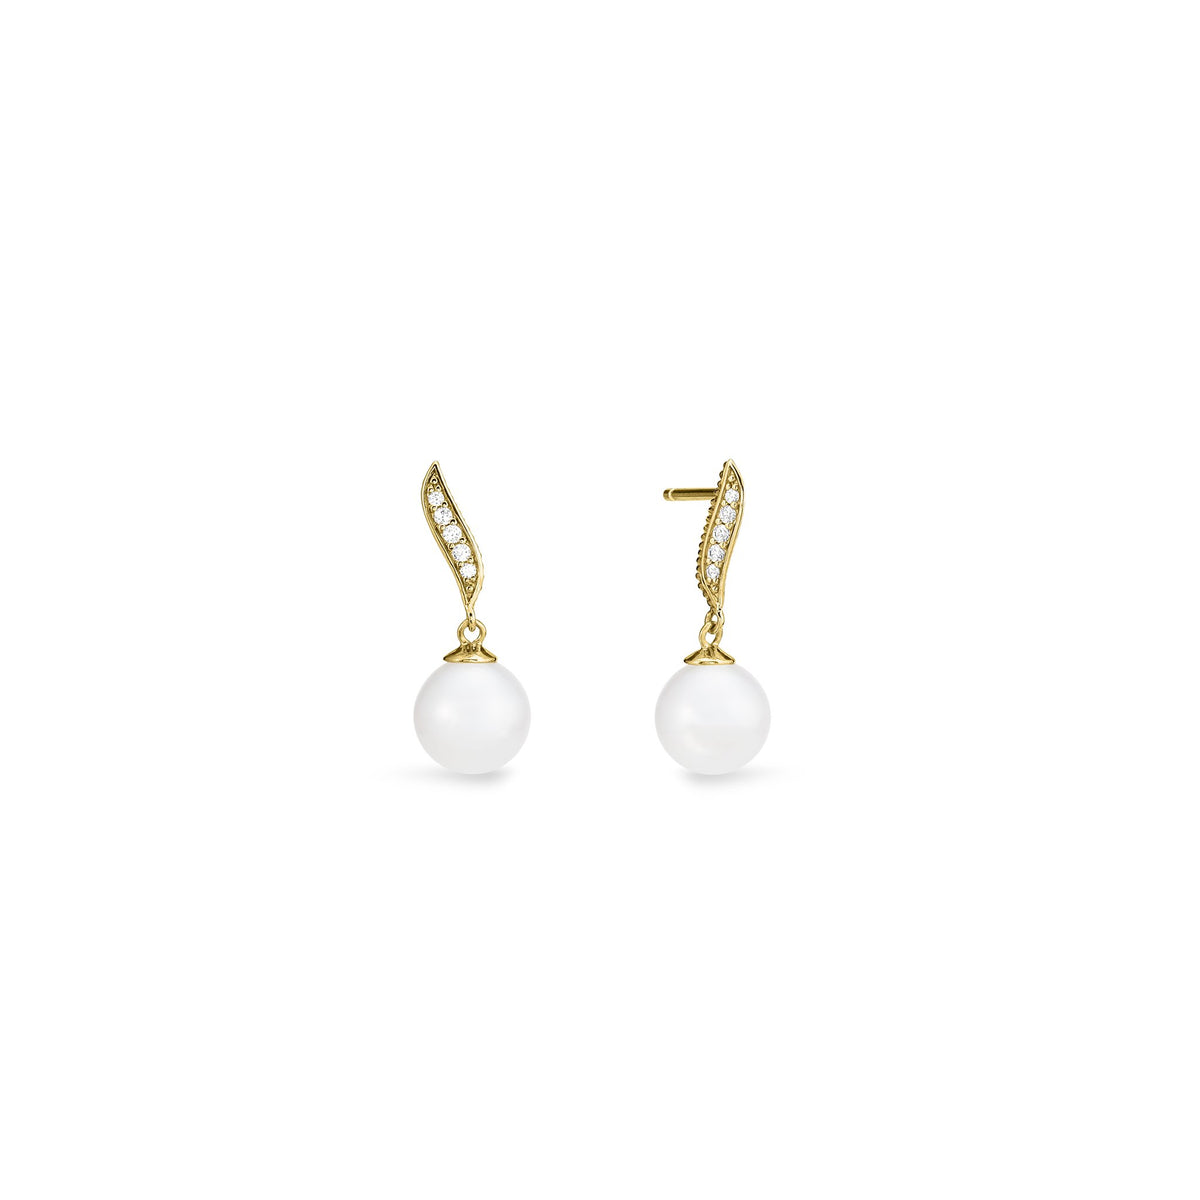 Shima Drop Earrings with Freshwater Pearls and Diamonds in 18K